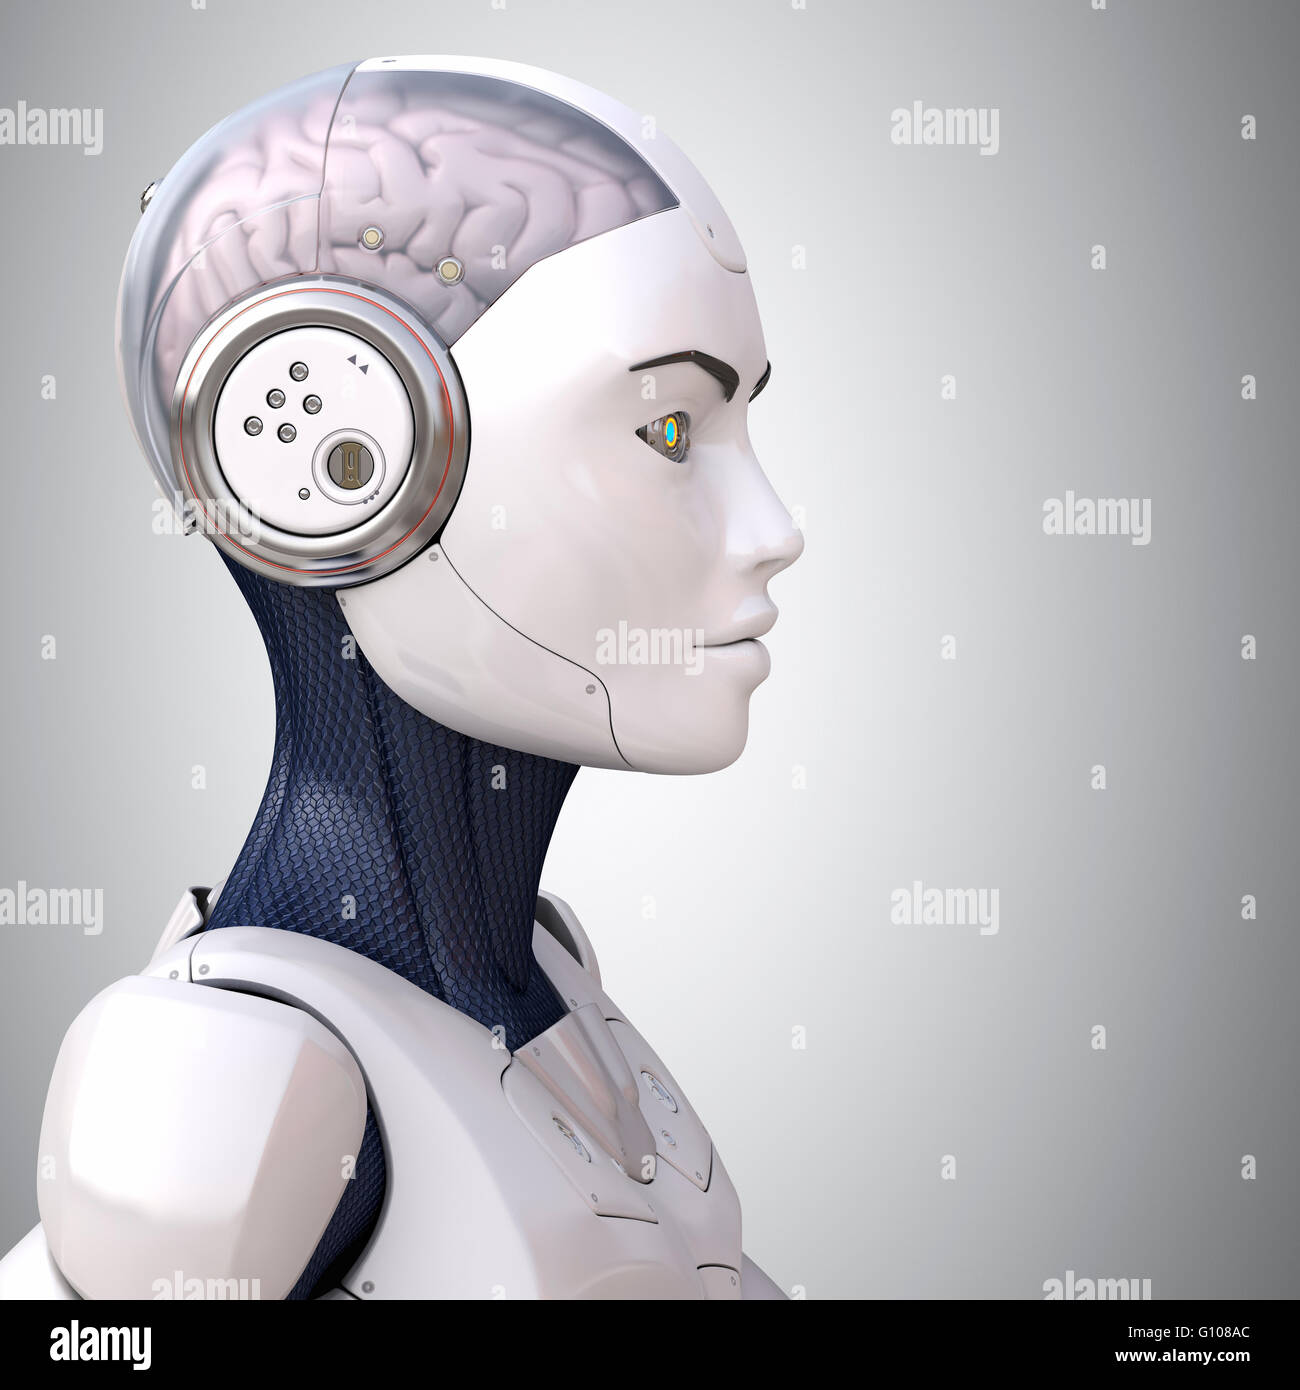 Robot's head in profile - Stock Image